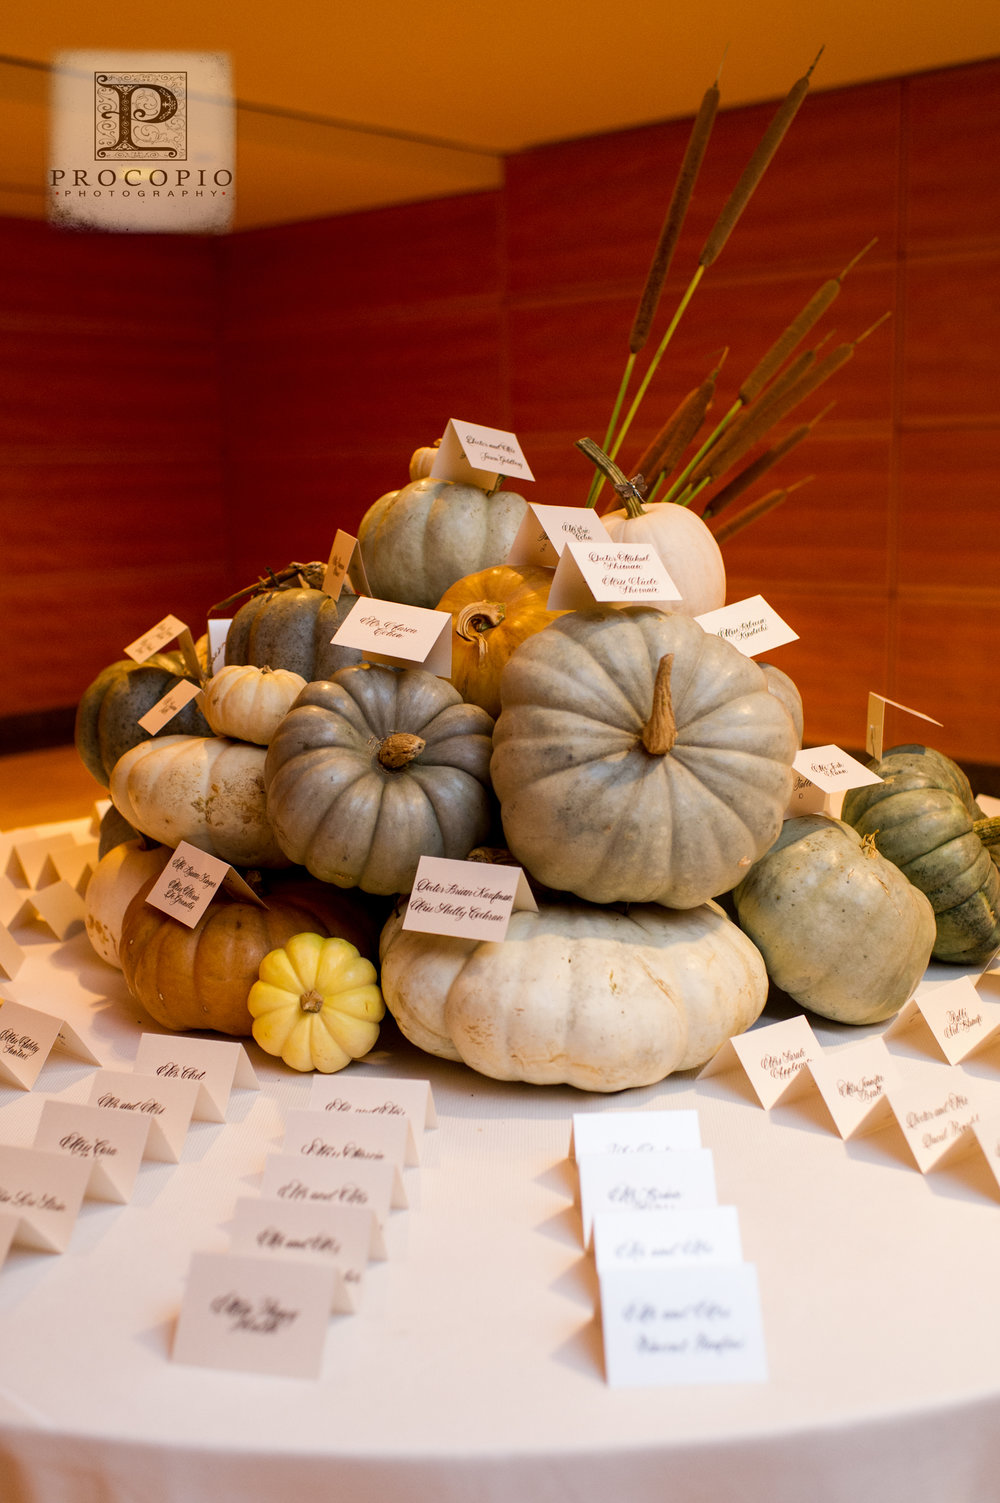 A stack of pumpkins to hold the escort cards